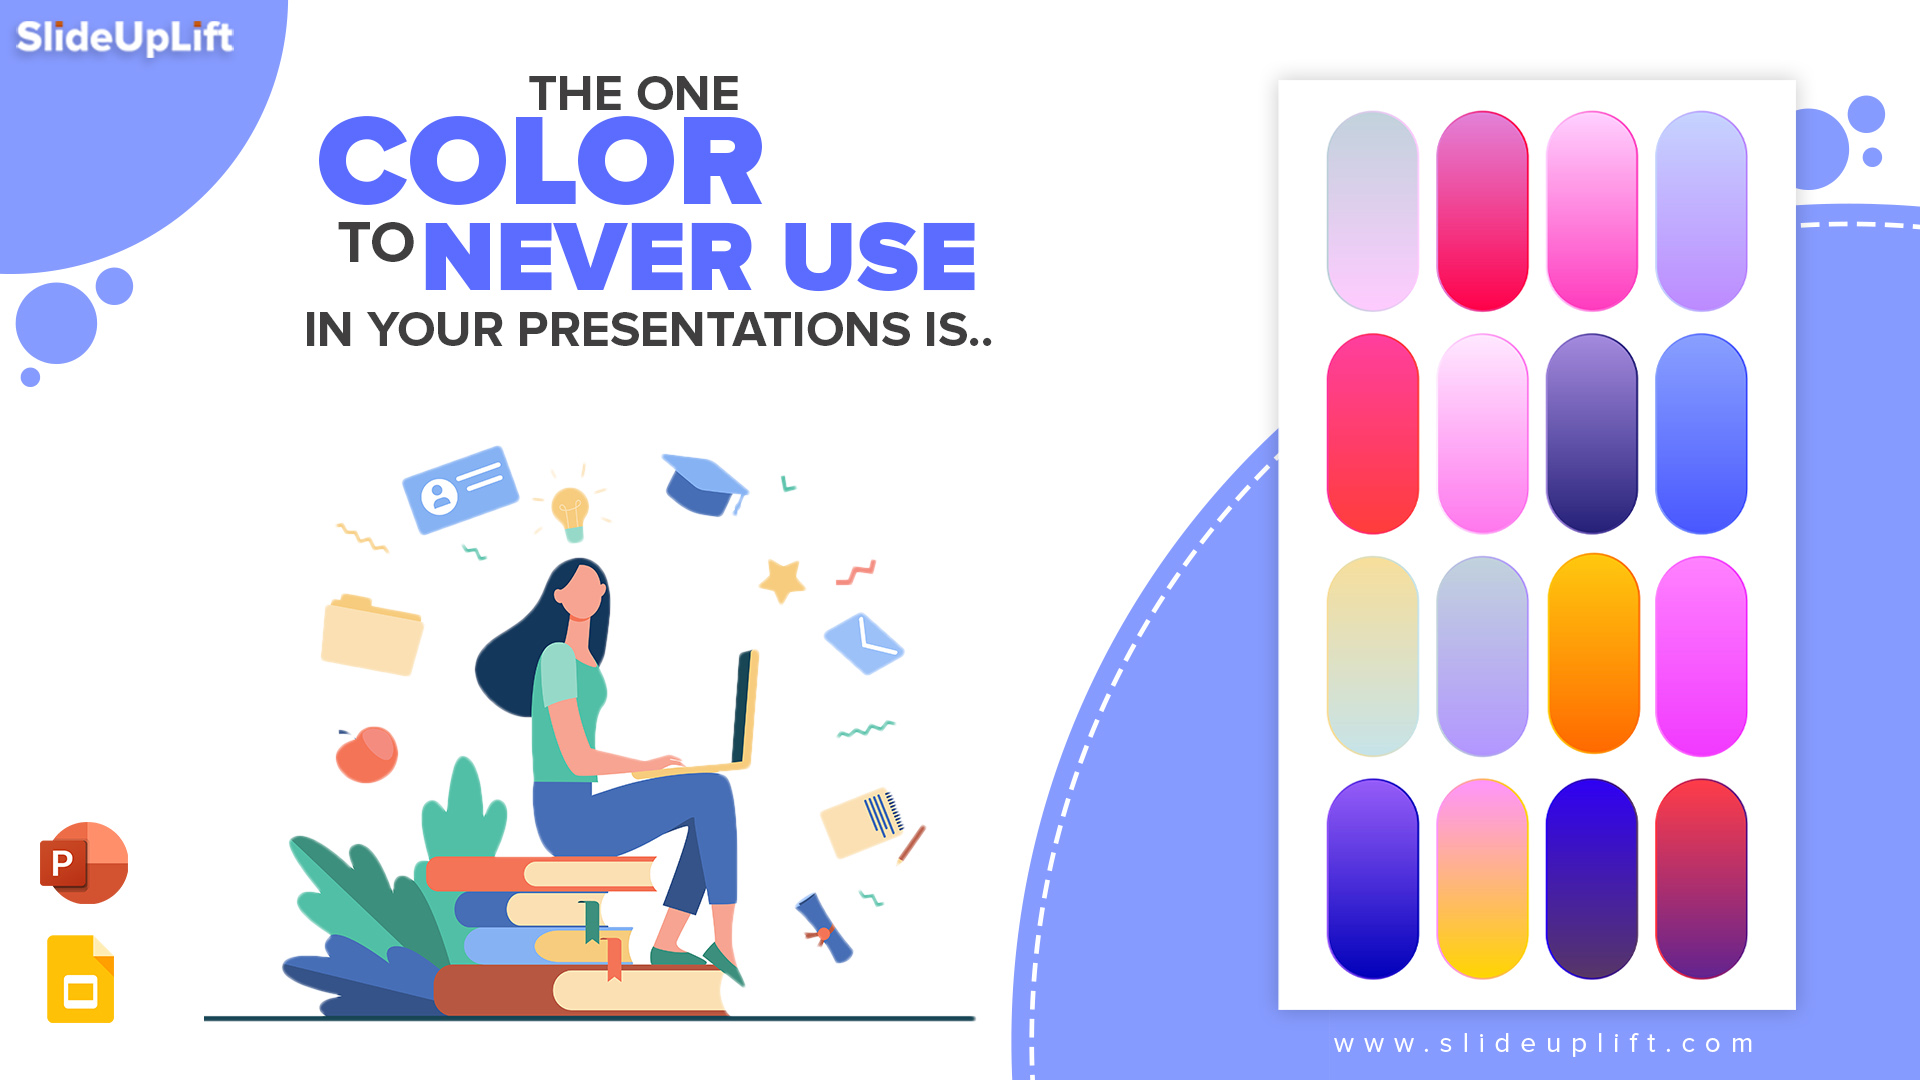 The One Color To Never Use In Your Presentations is....